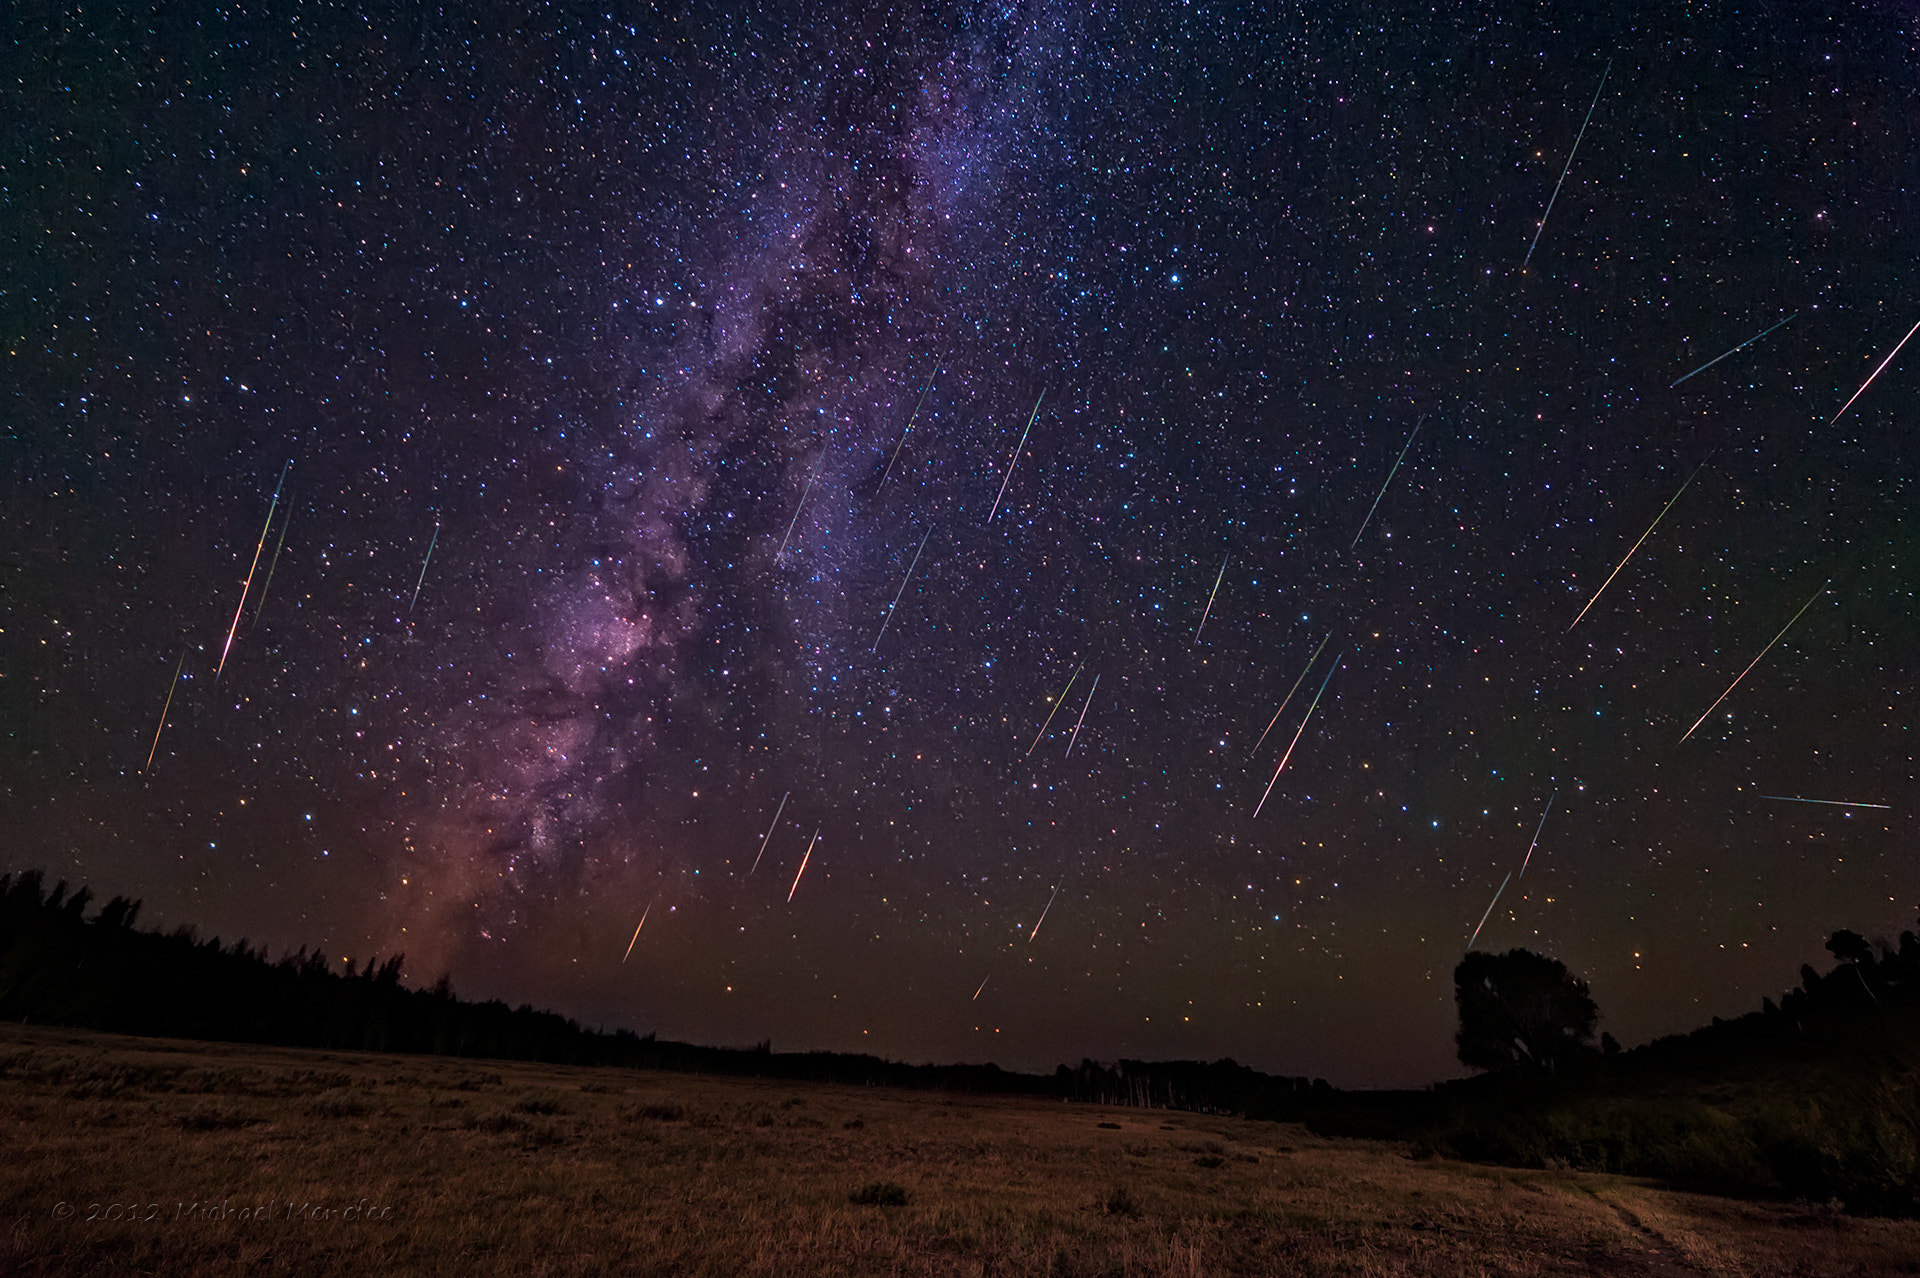 Photograph Milky Perseids by Michael Menefee on 500px